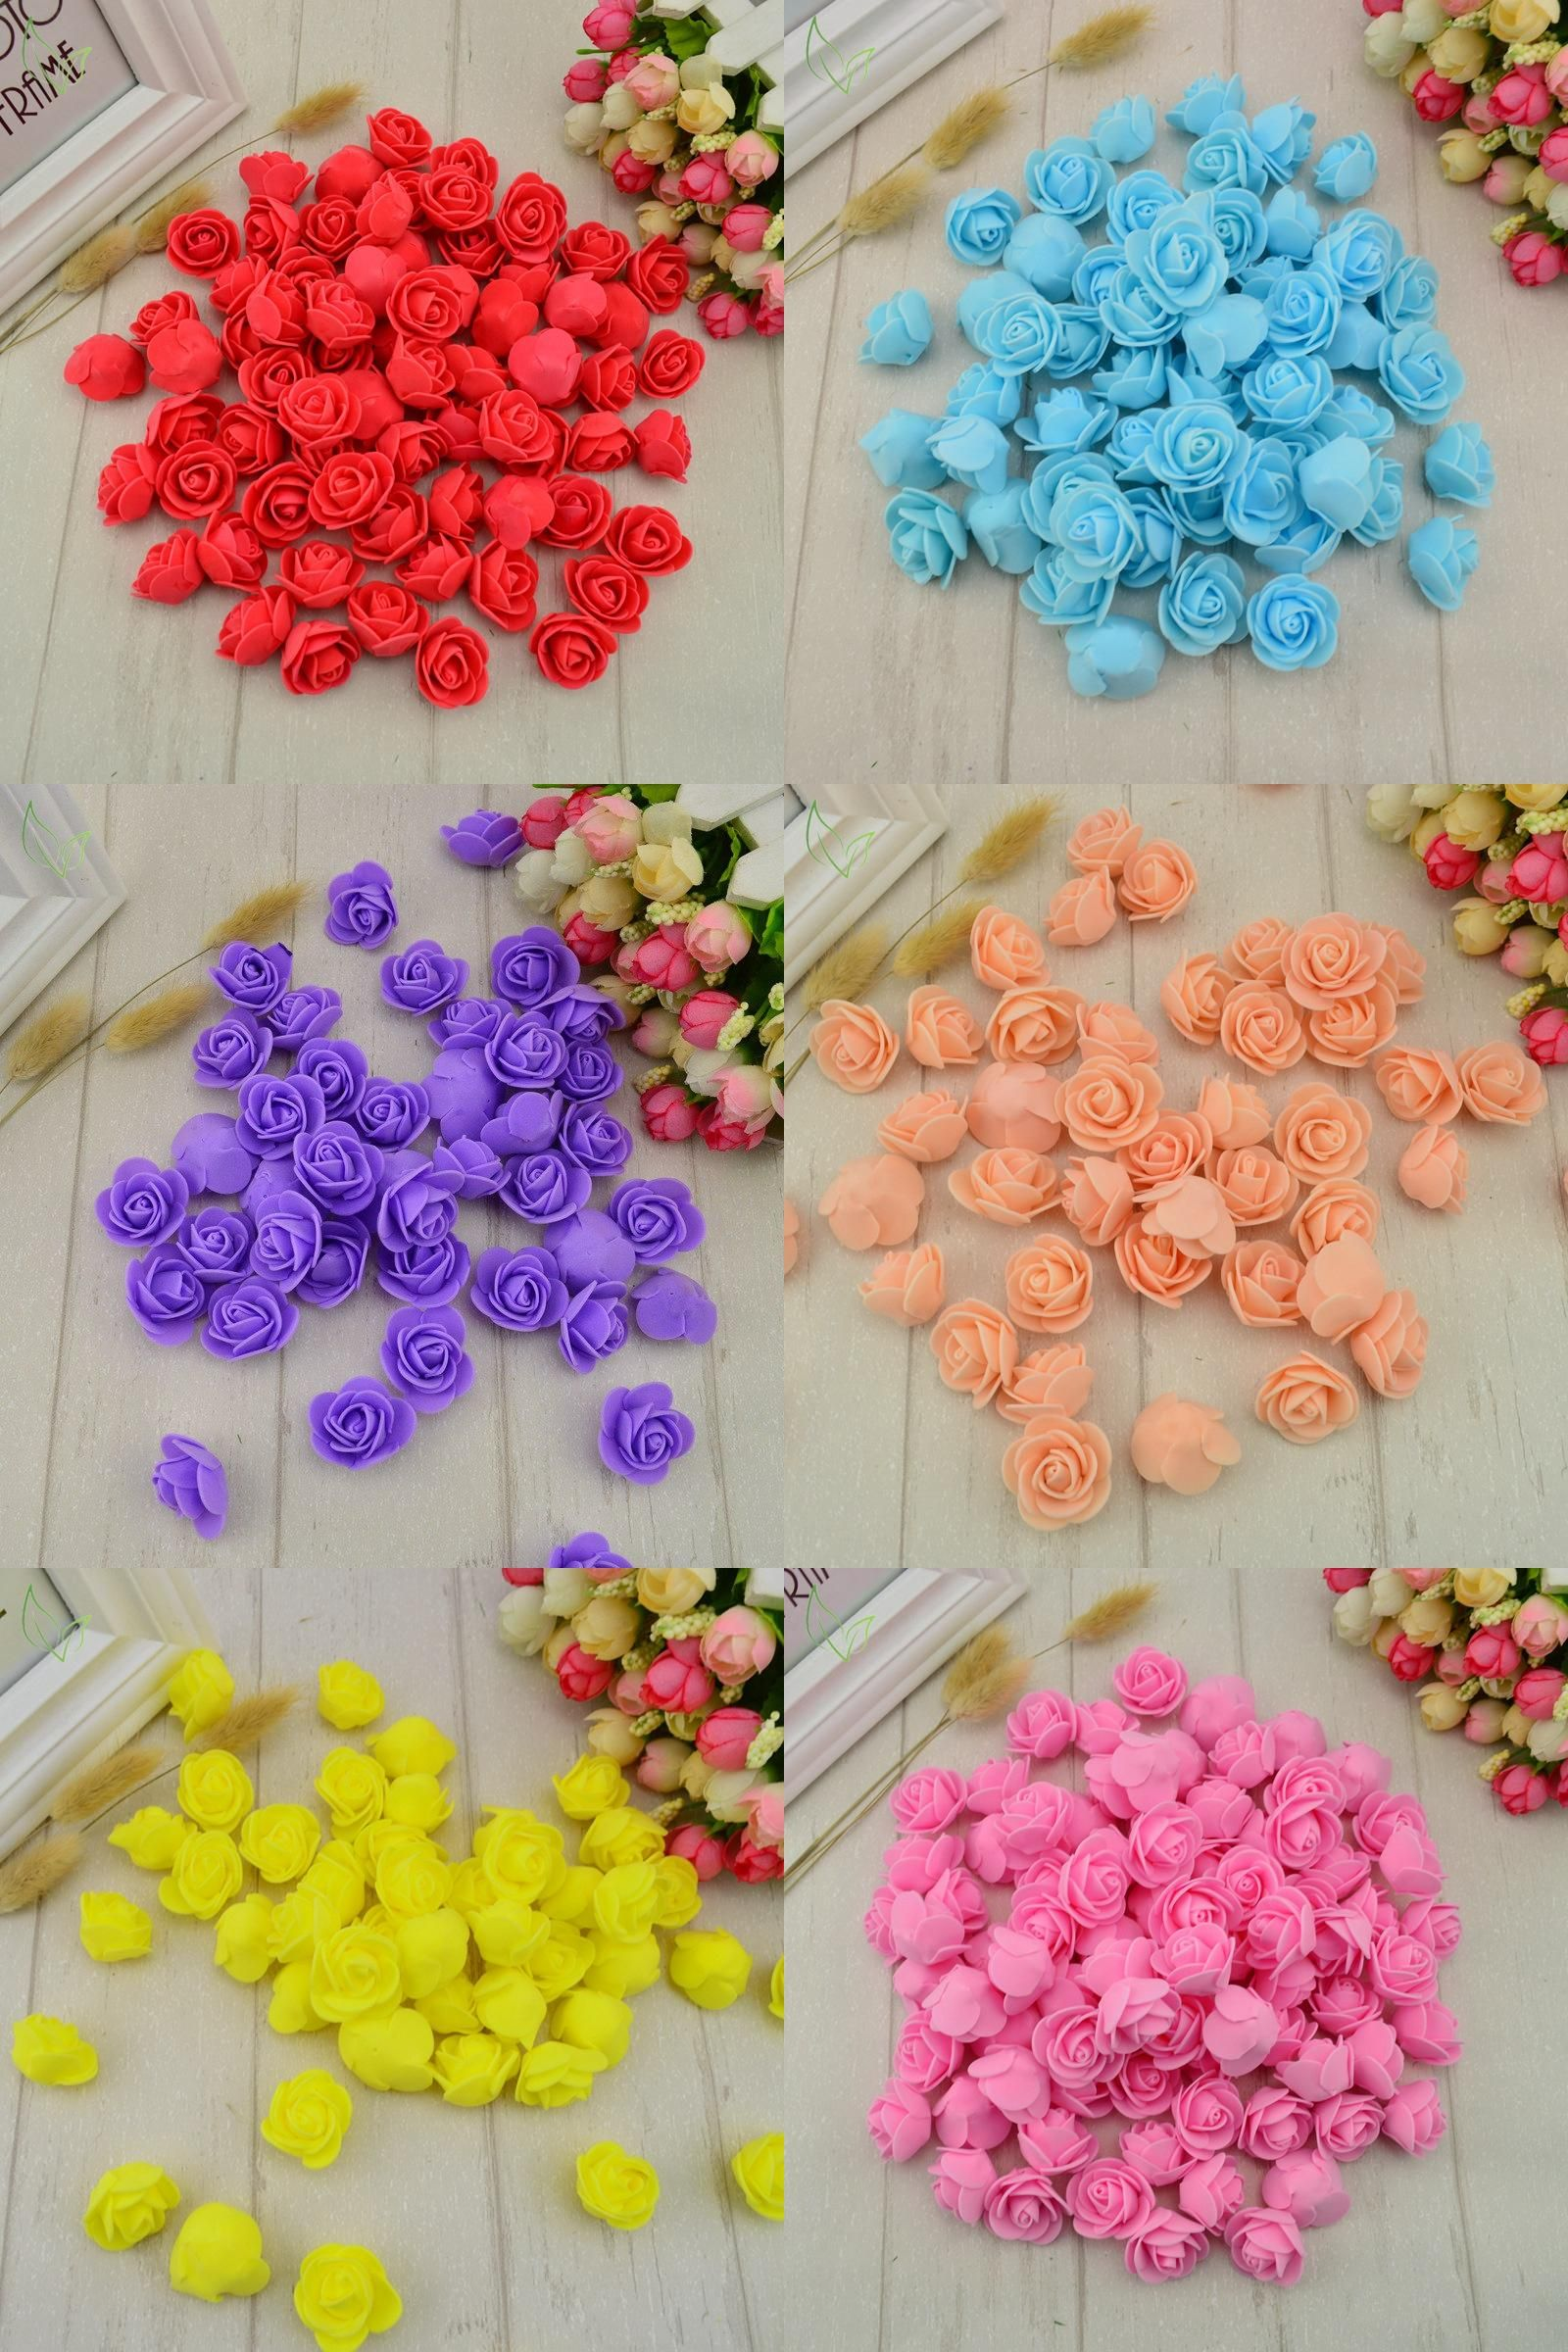 Visit To Buy 50 Pcs Pe Foam Fake Flower Roses Head Artificial